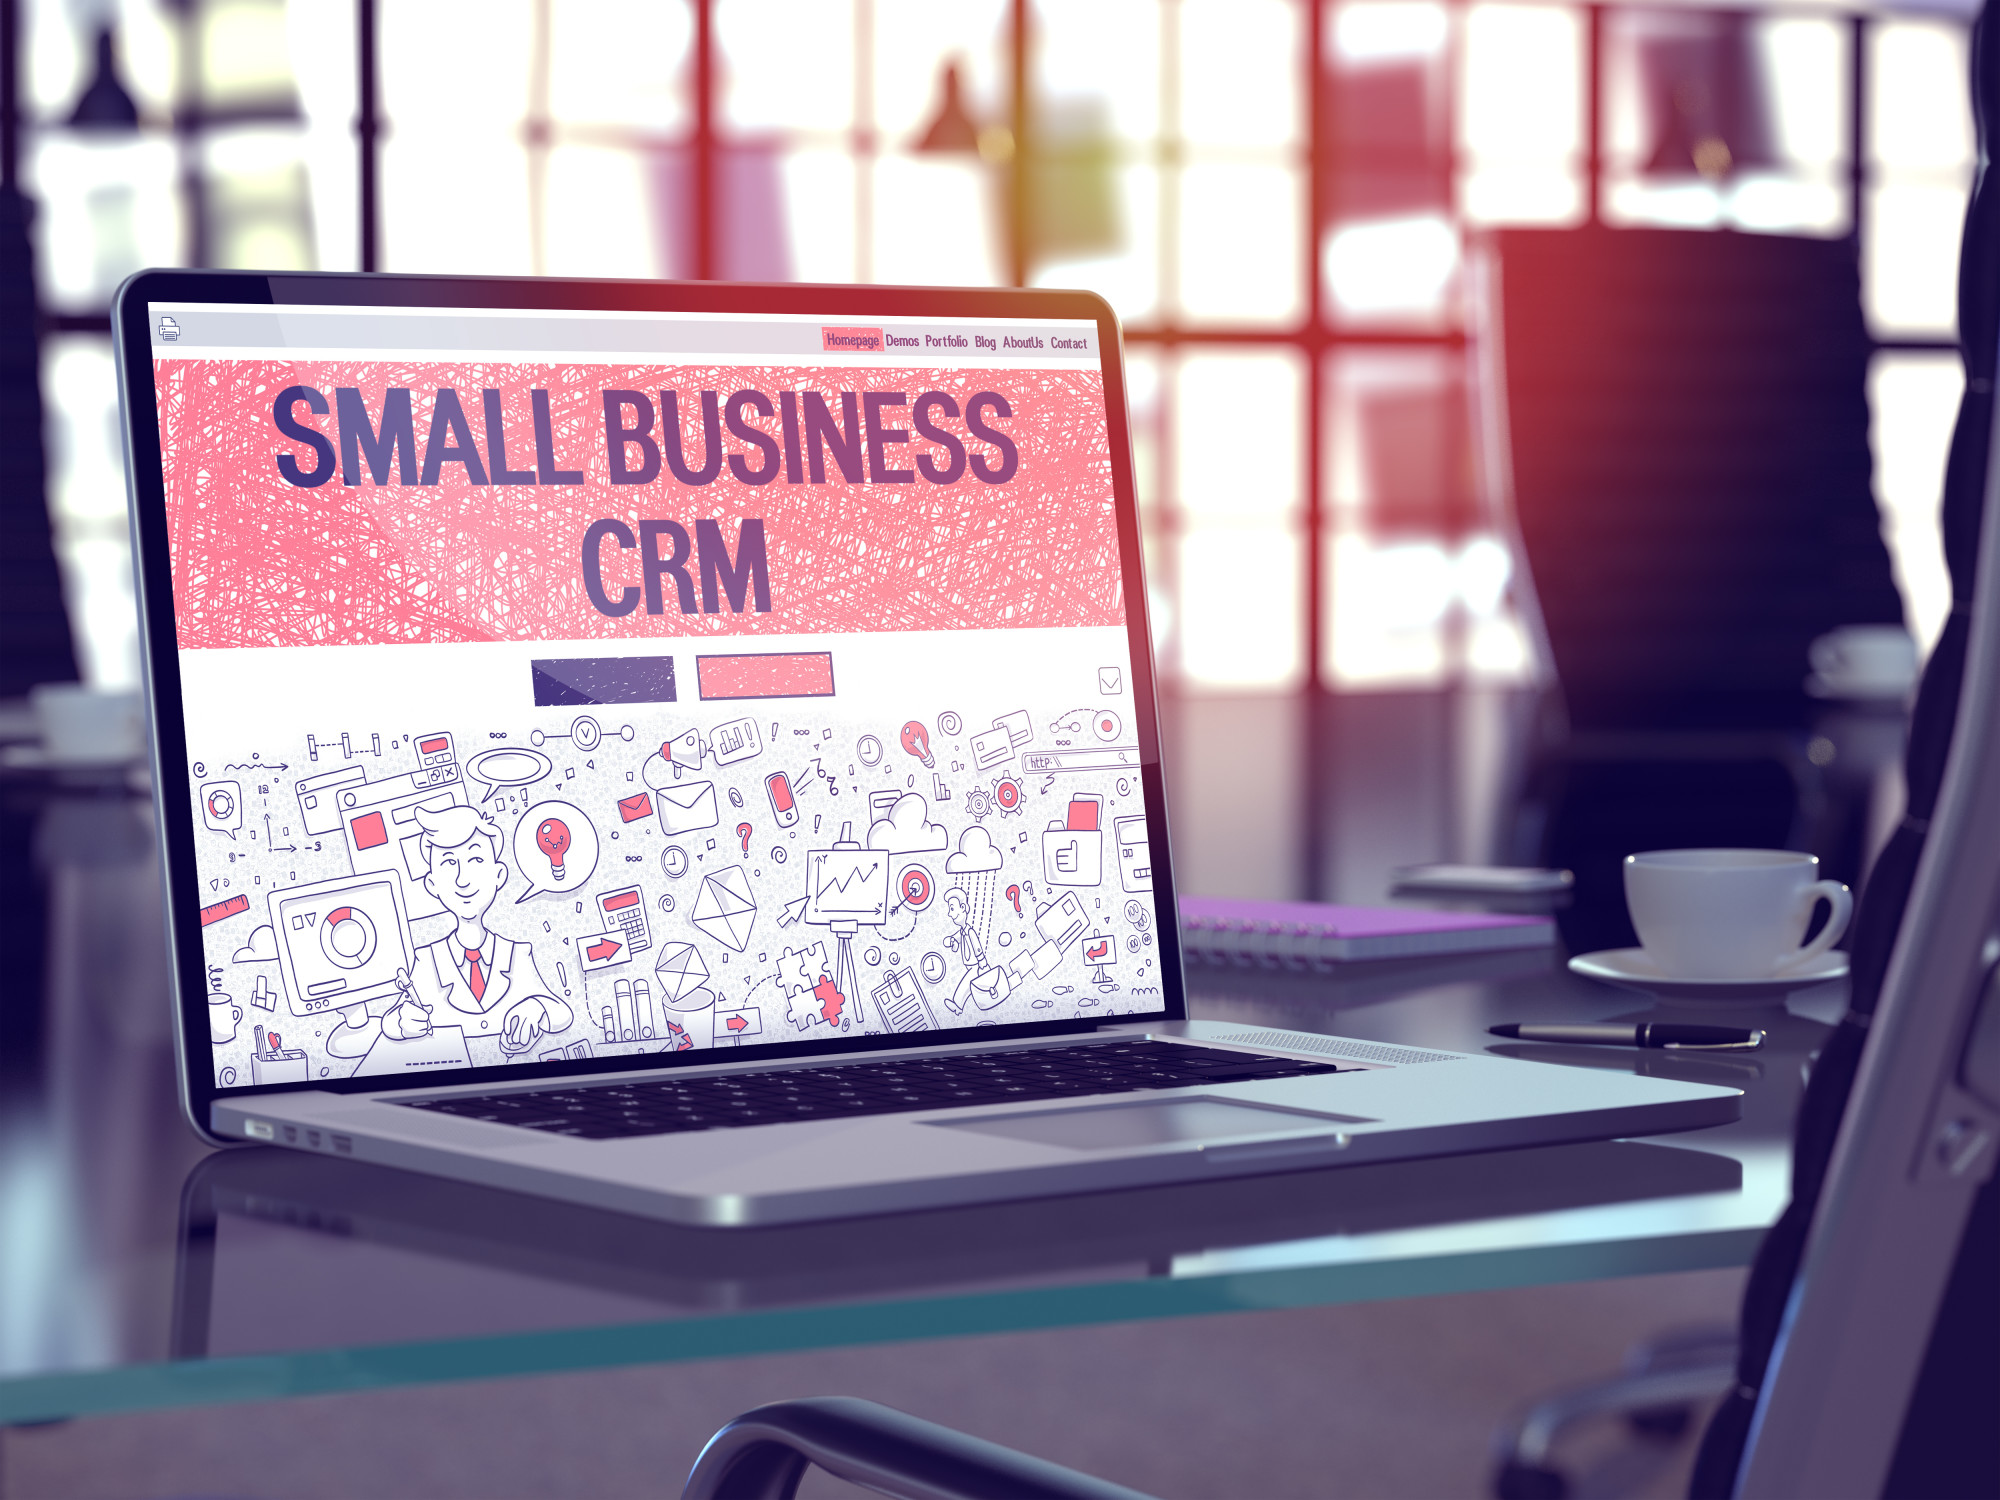 What To Know When Choosing CRM Software for Your Small Business